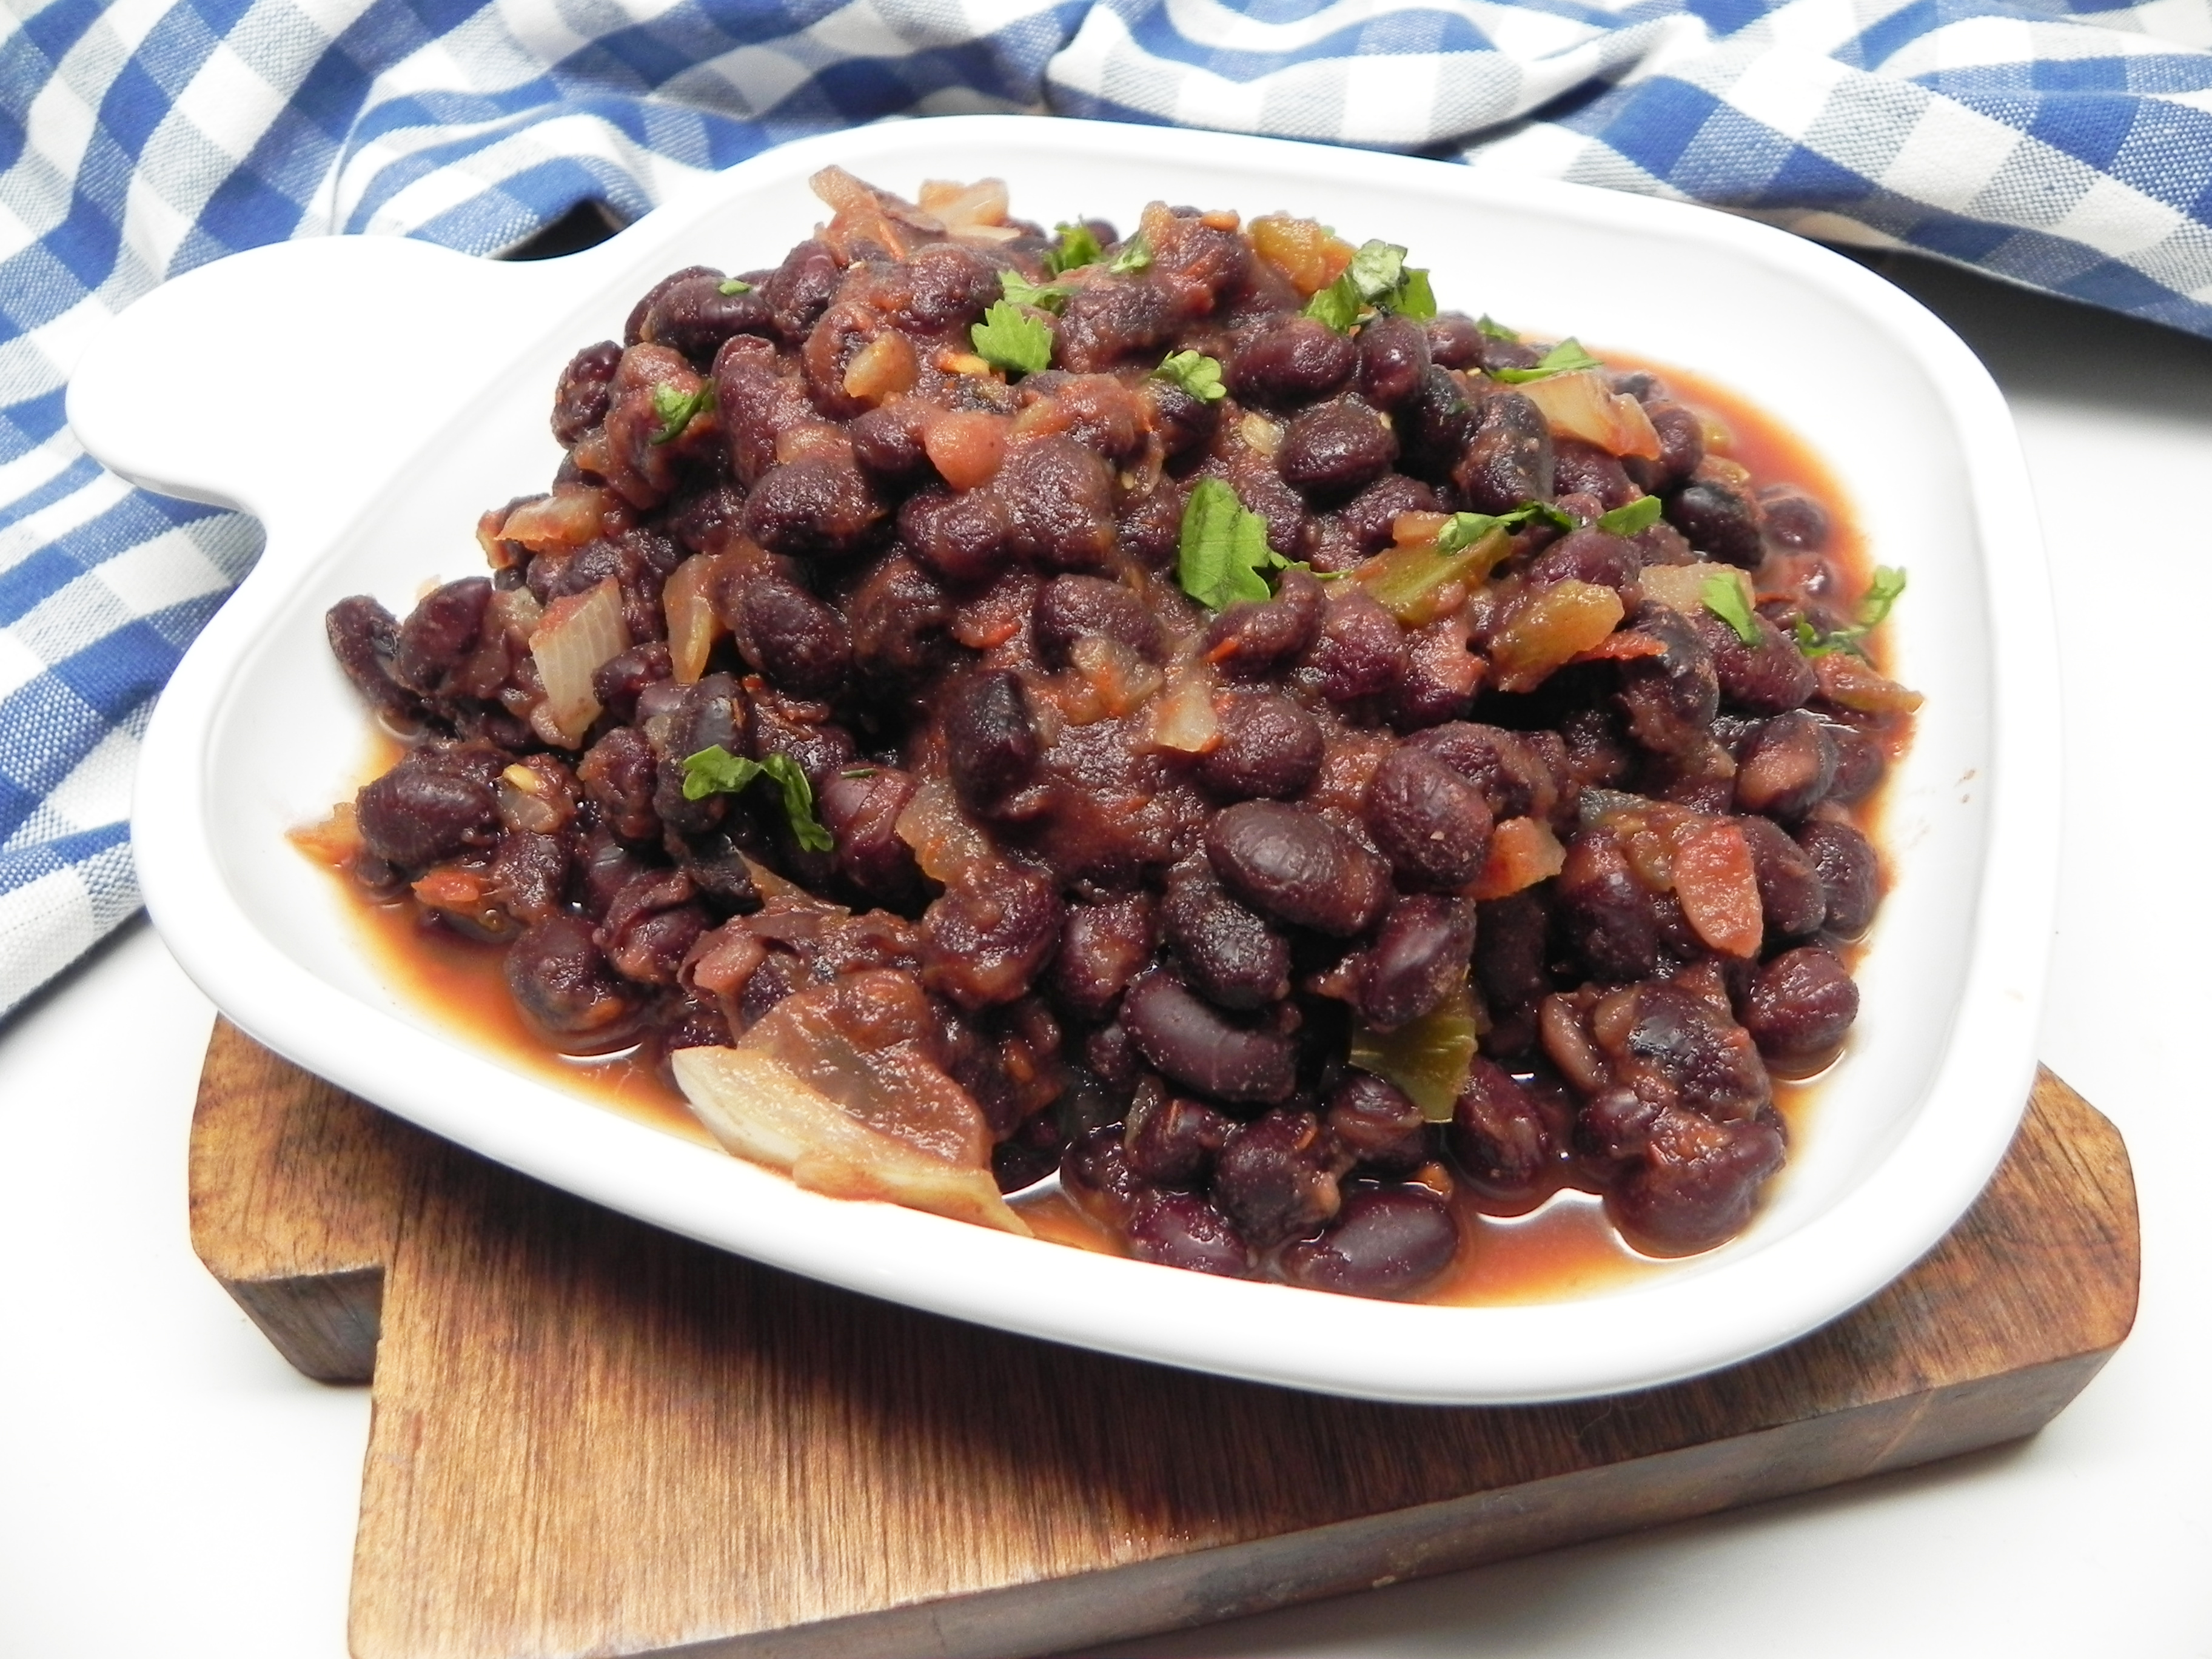 Vegan Spiced Black Beans for a Crowd